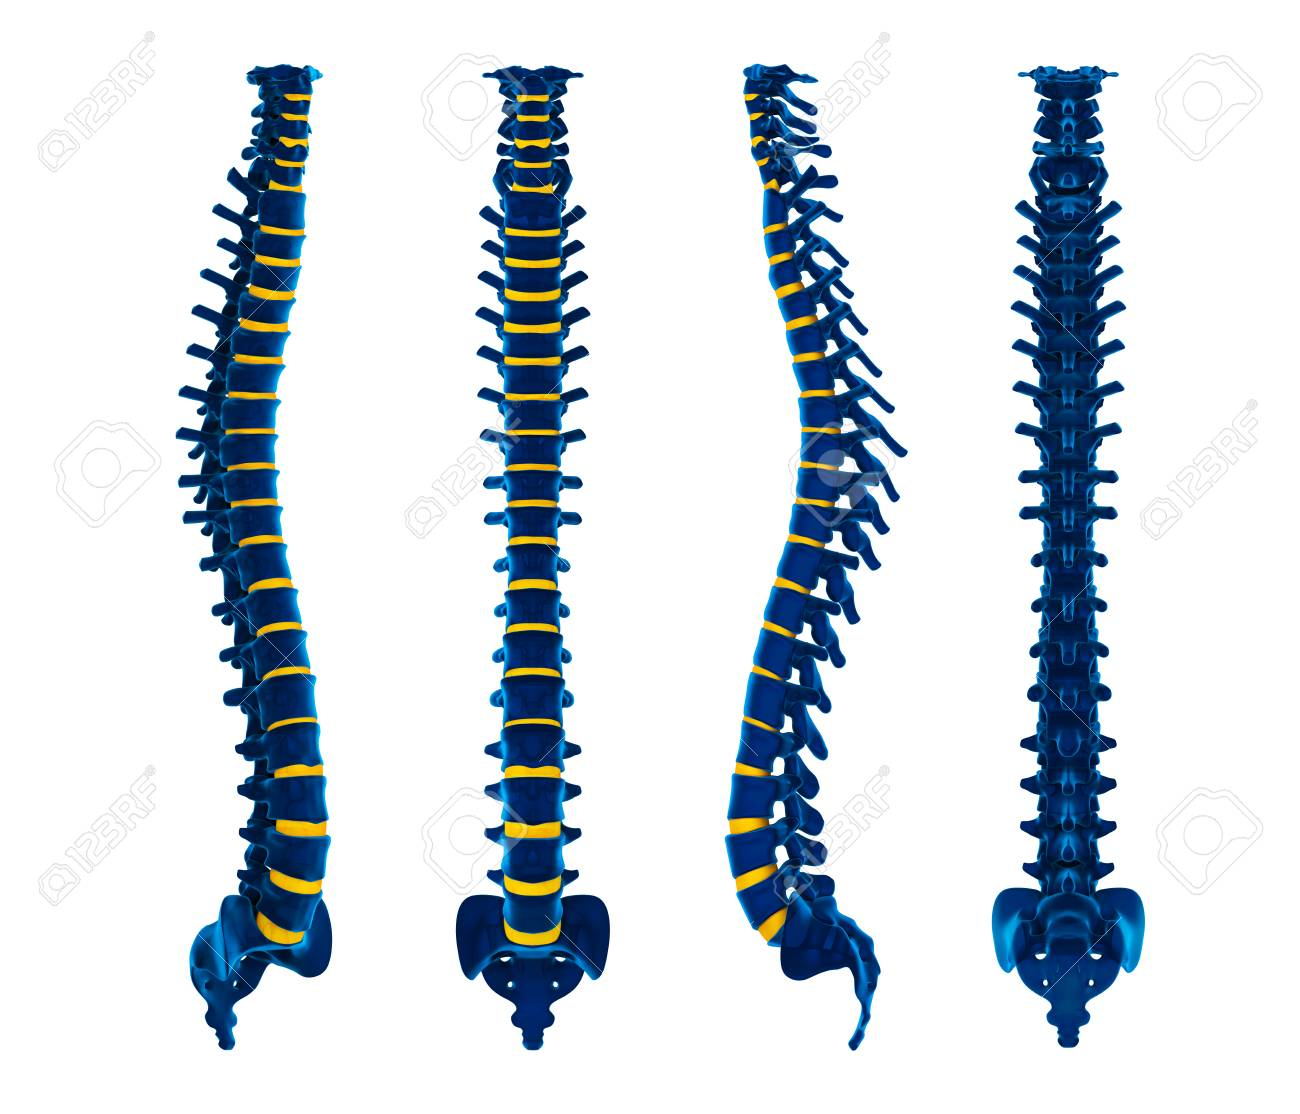 Human Spine Anatomy Stock Photo, Picture And Royalty Free Image ...